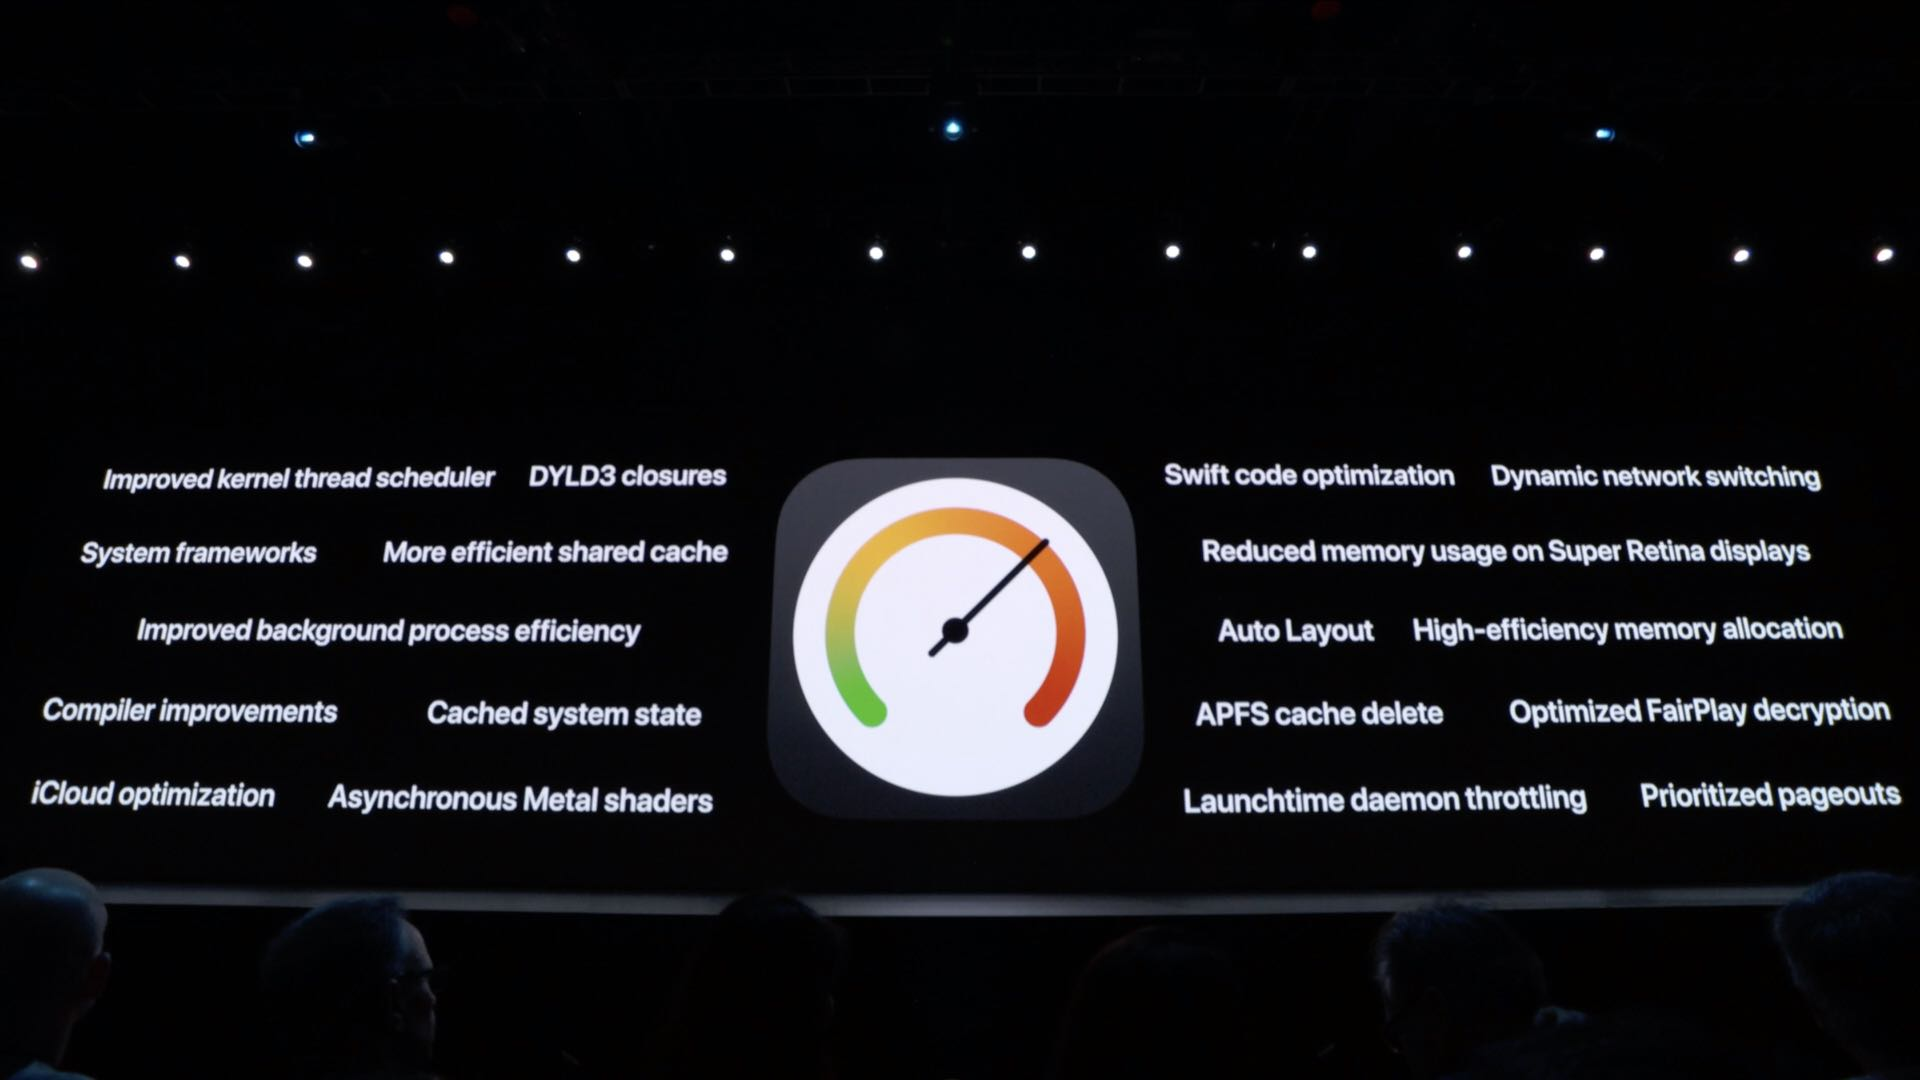 WWDC 2019 slide: a list of under-the-hood tweaks making iOS 13 faster and more battery-friendly